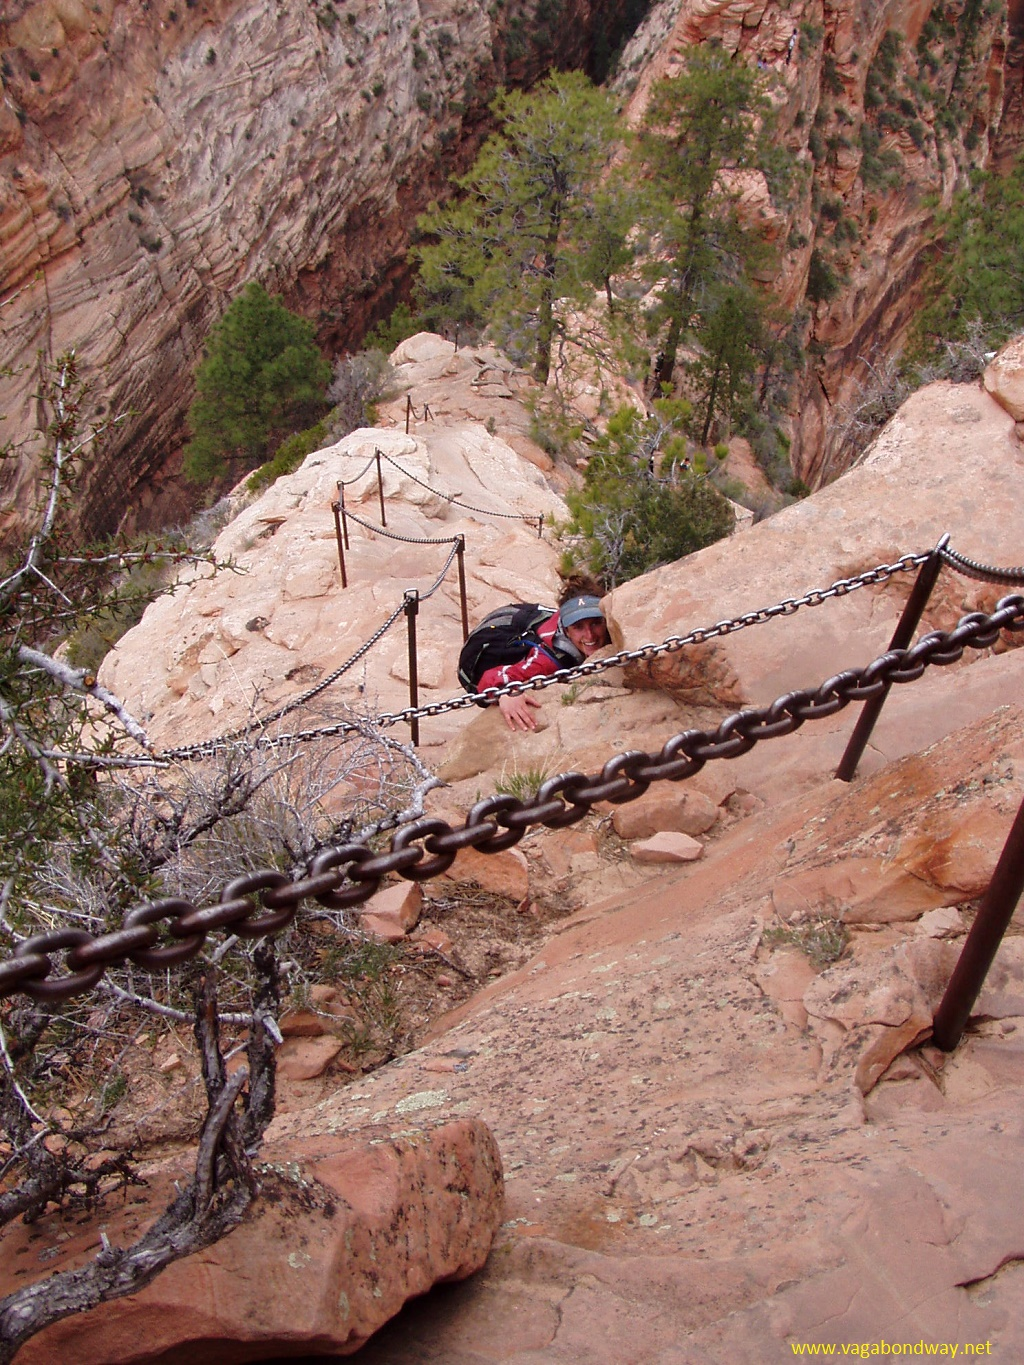 Steep trail in Zion National Park, Utah